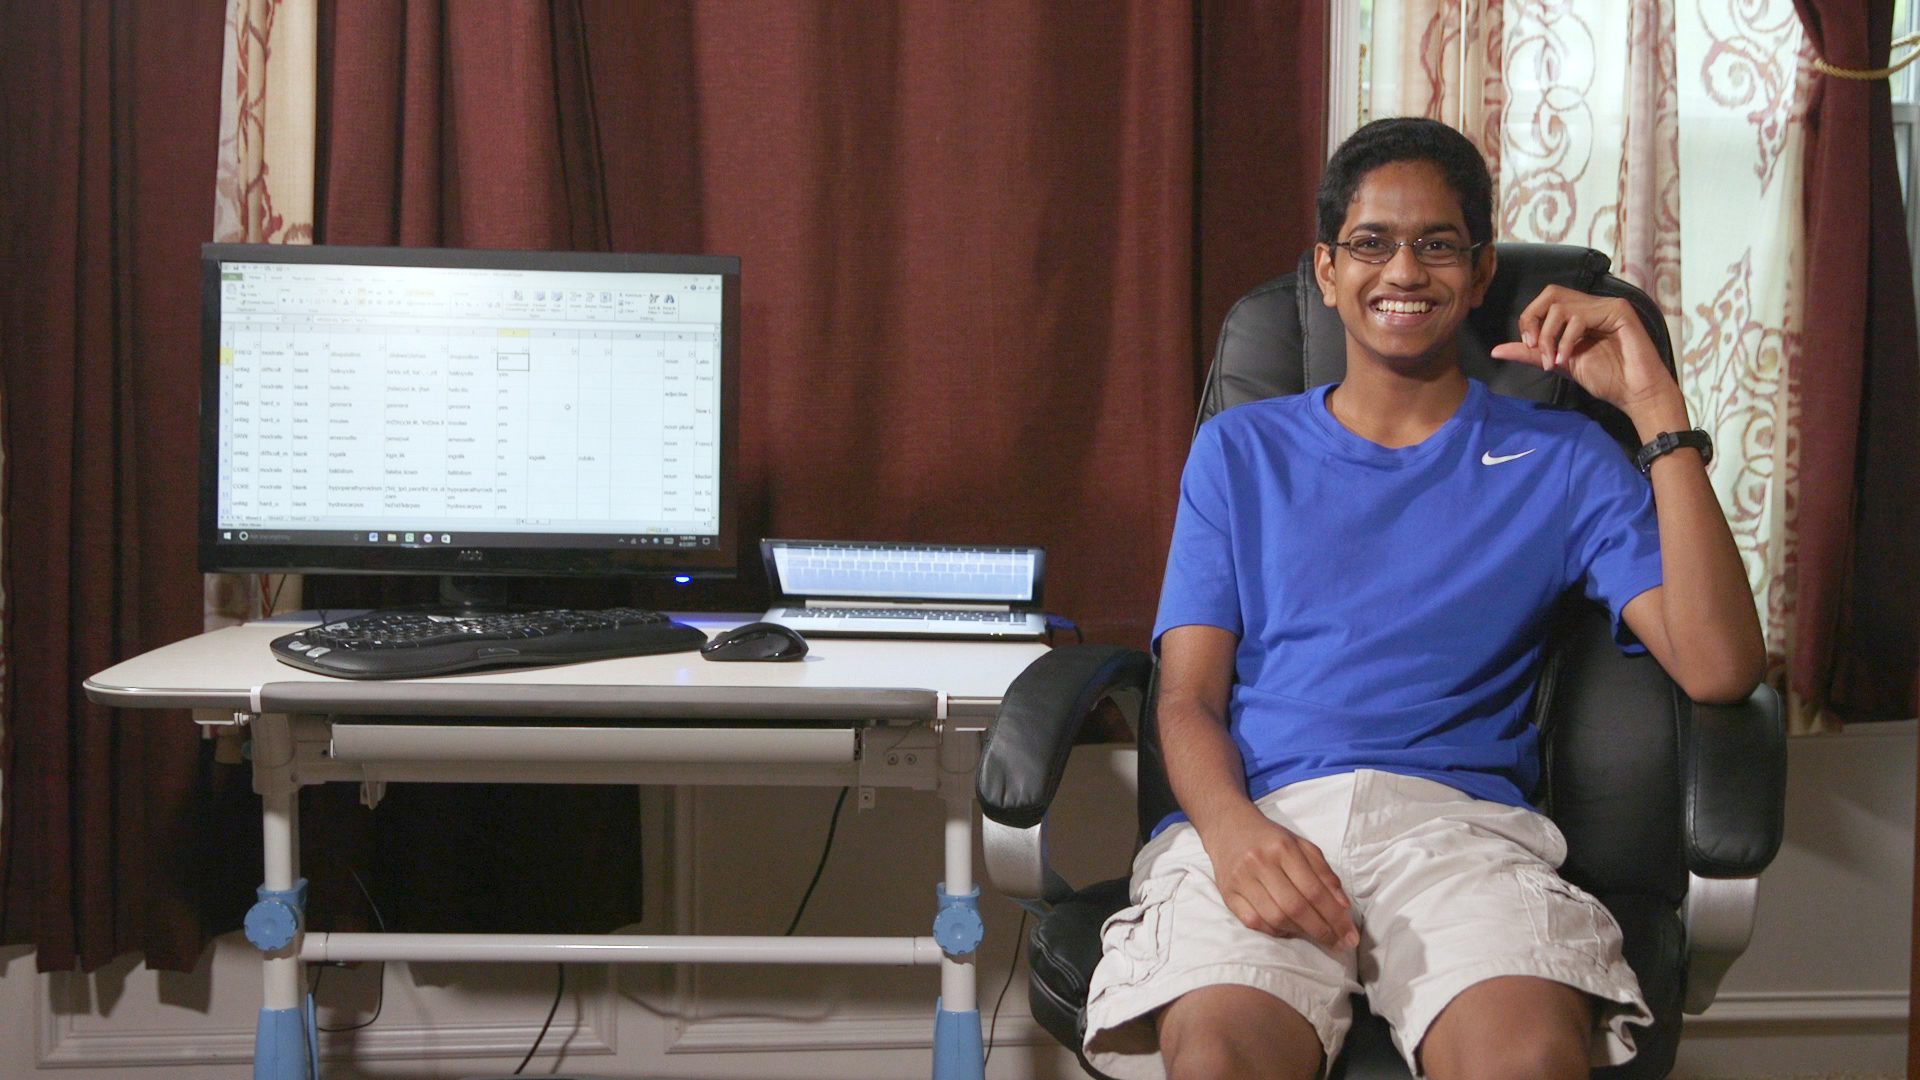 ShouravCC_RT.jpg